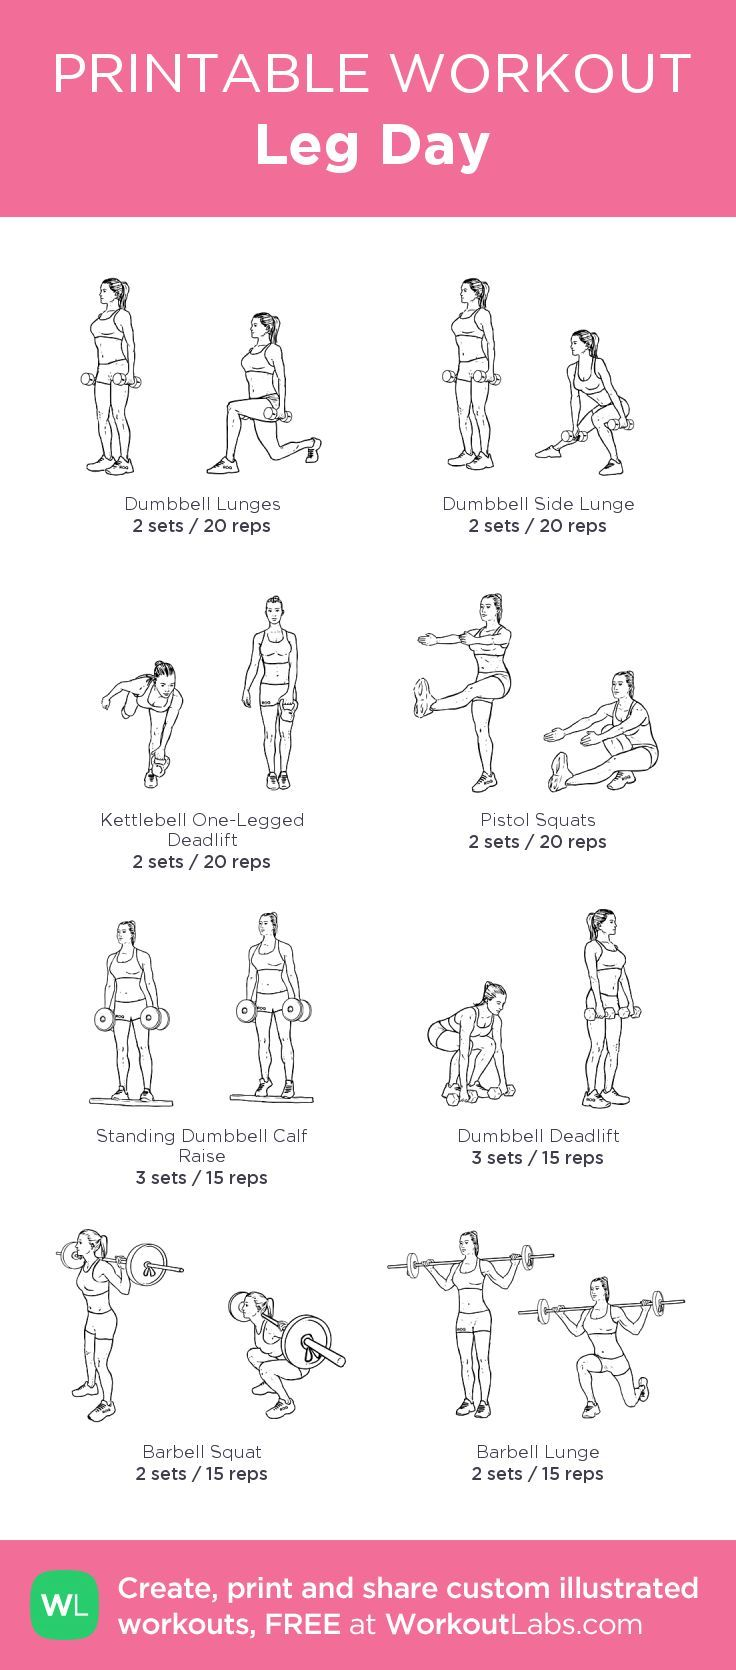 Ambitious image for printable work out routines